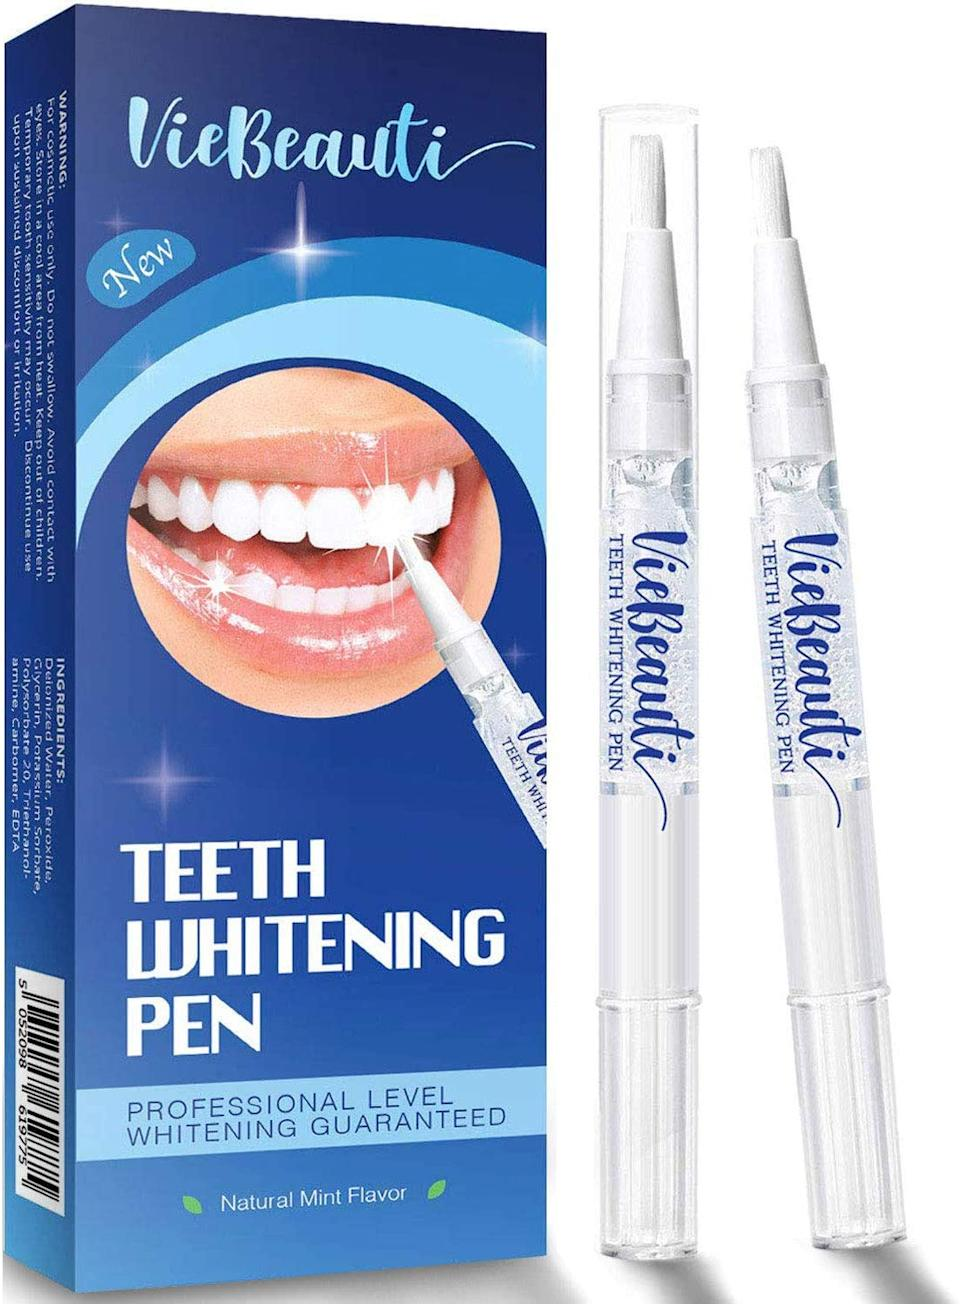 VieBeauti Teeth Whitening Pens (Credit: Amazon)